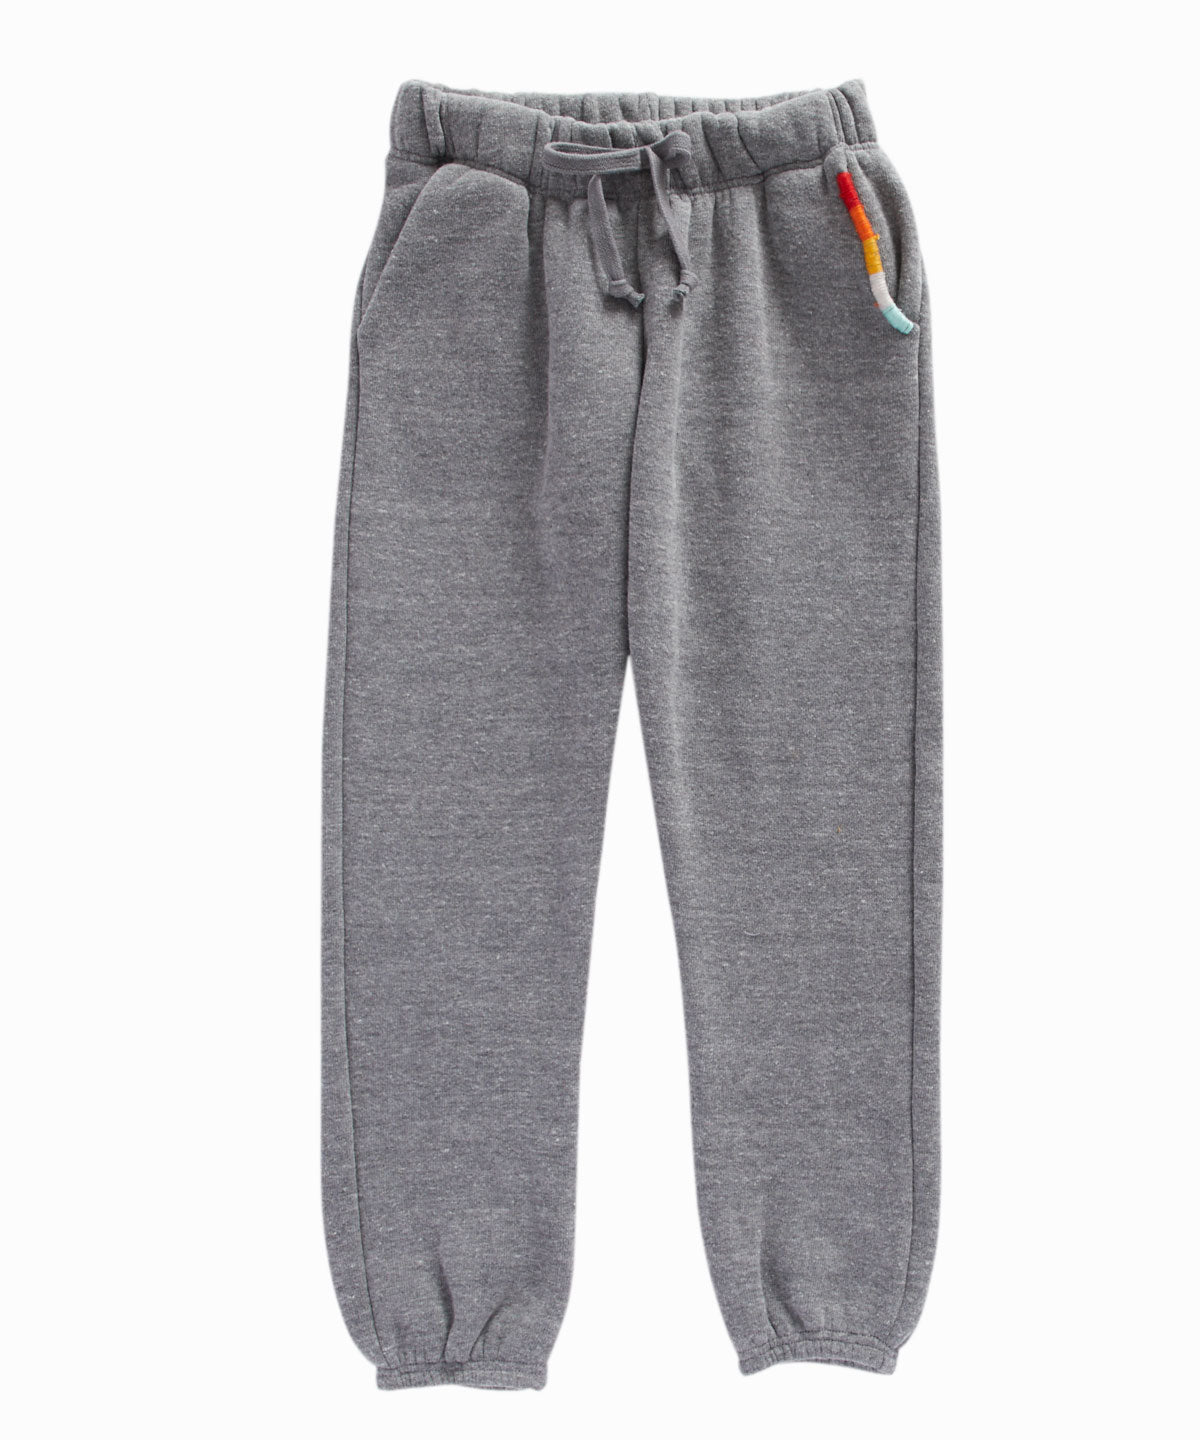 Varsity Favorite Grey Sweatpants